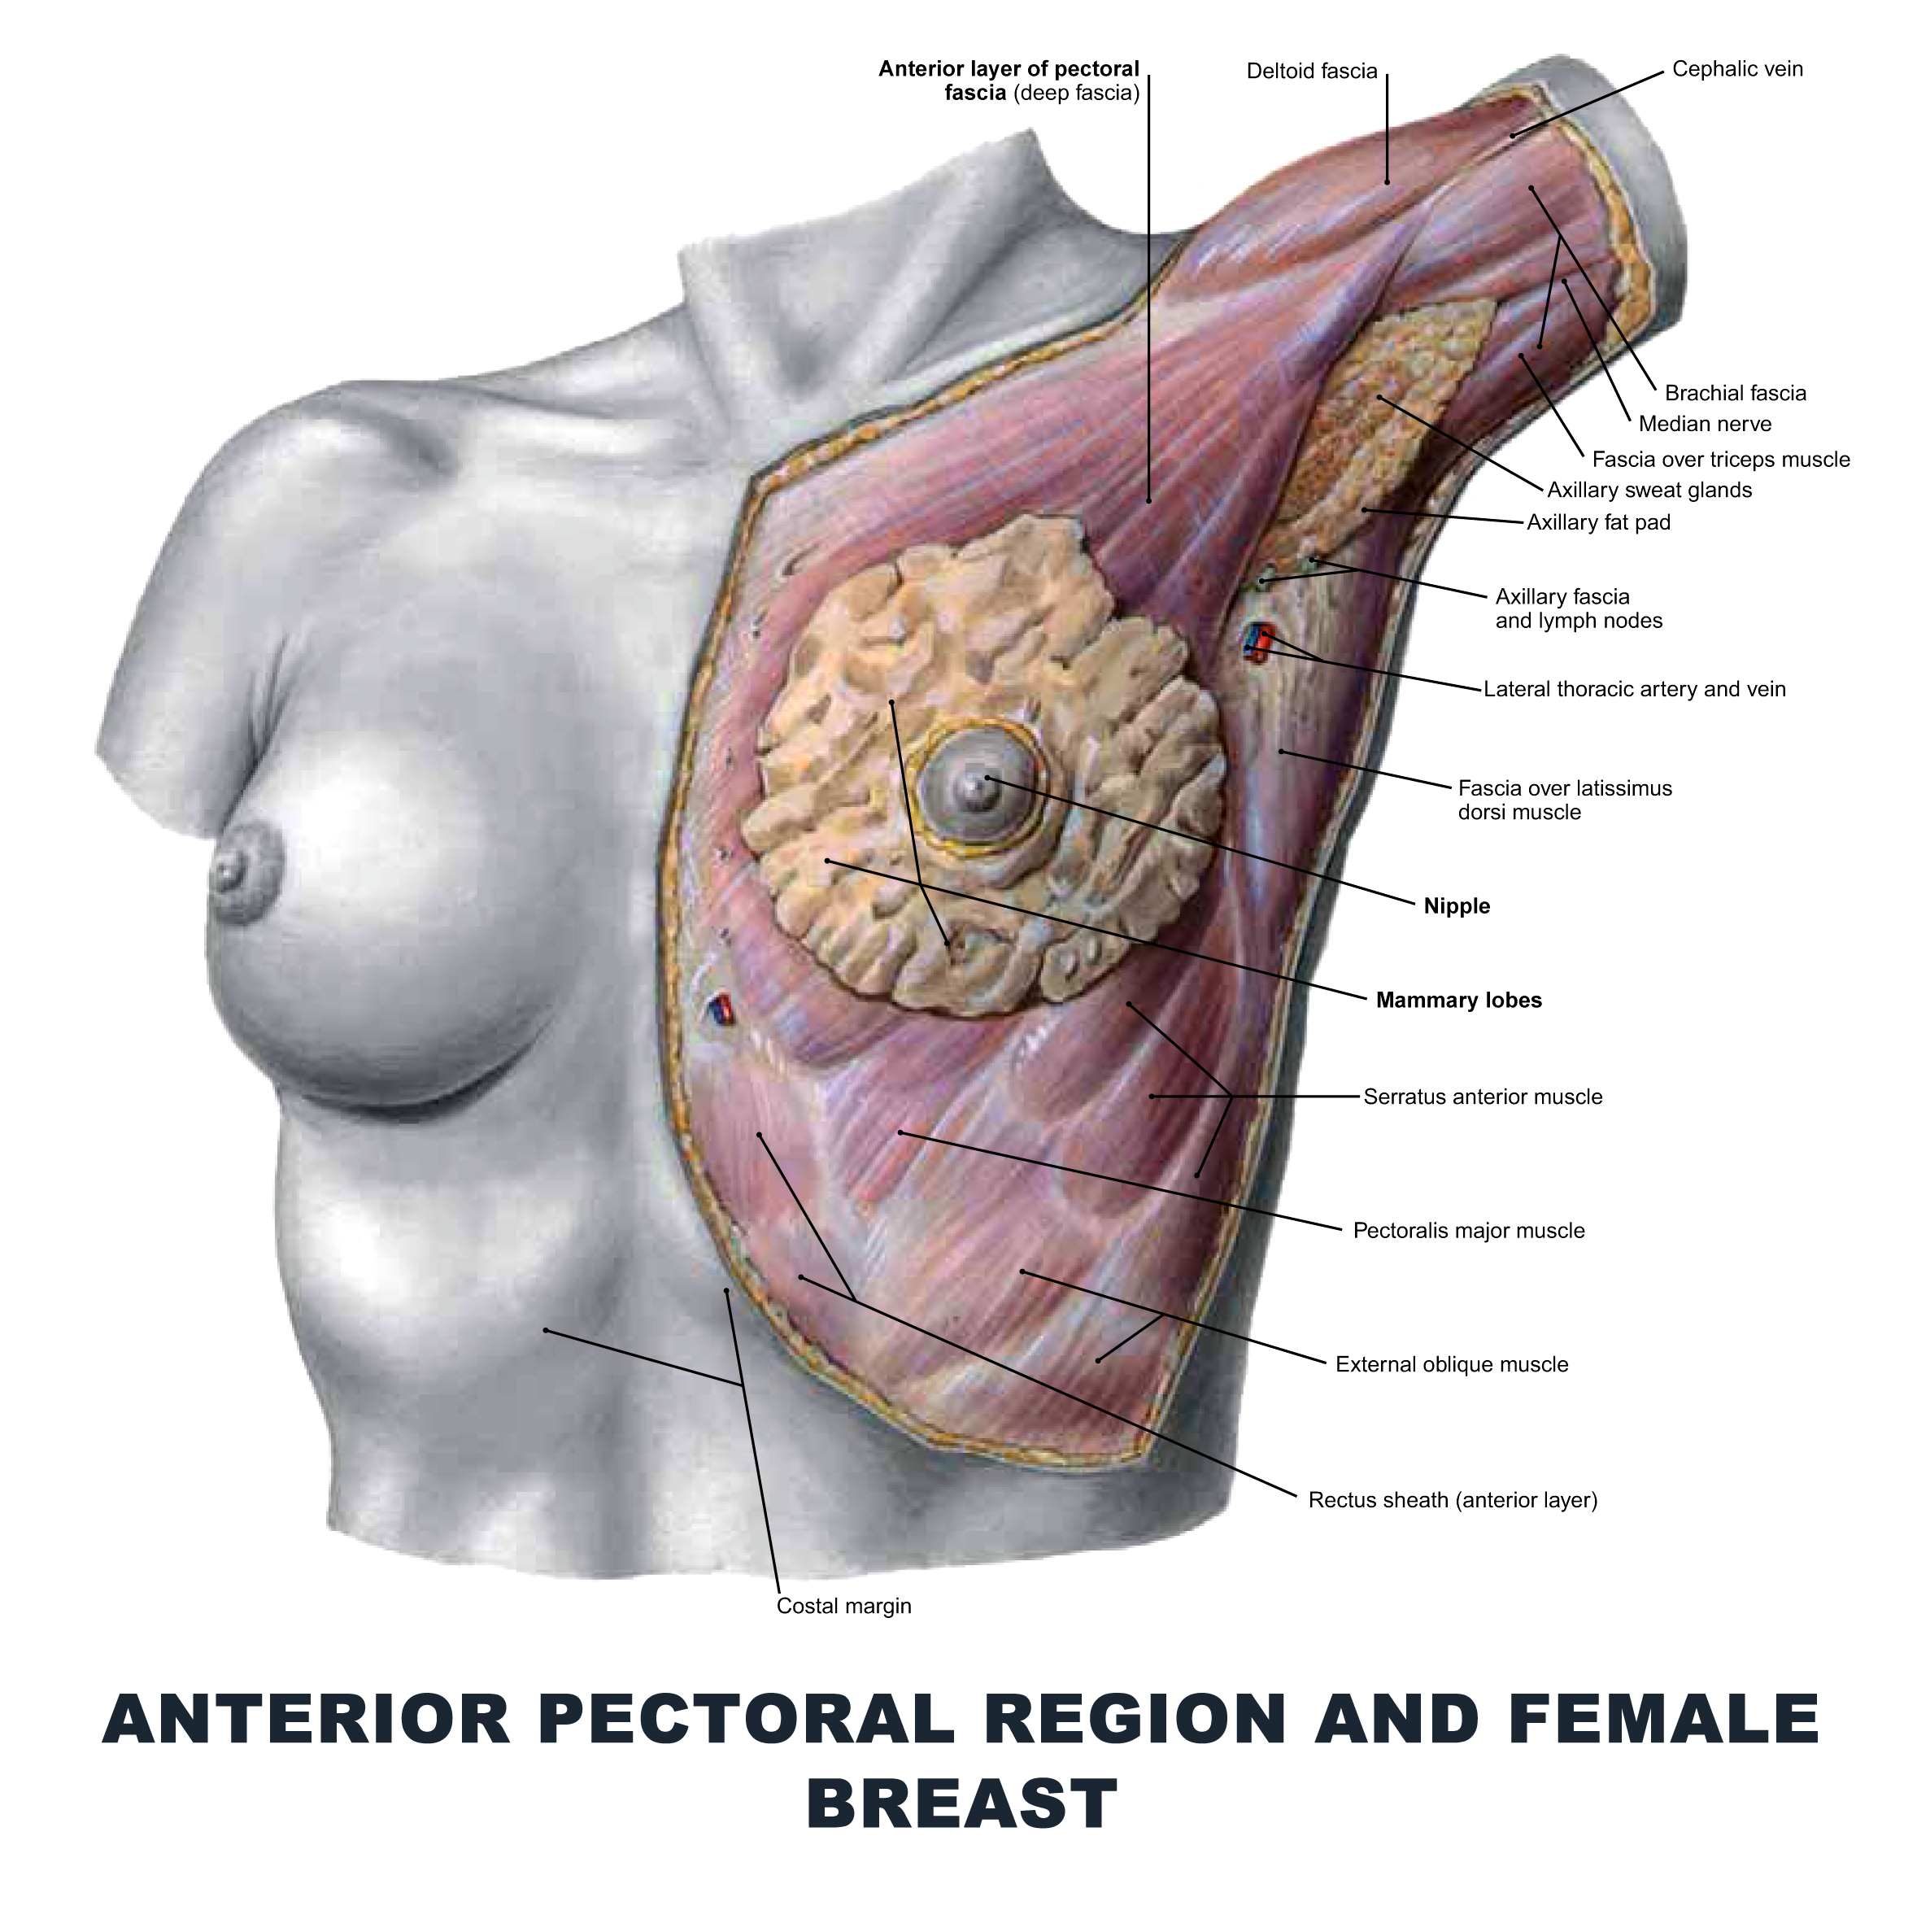 Anterior Pectoral Region and Female Breast - #anatomy images ...